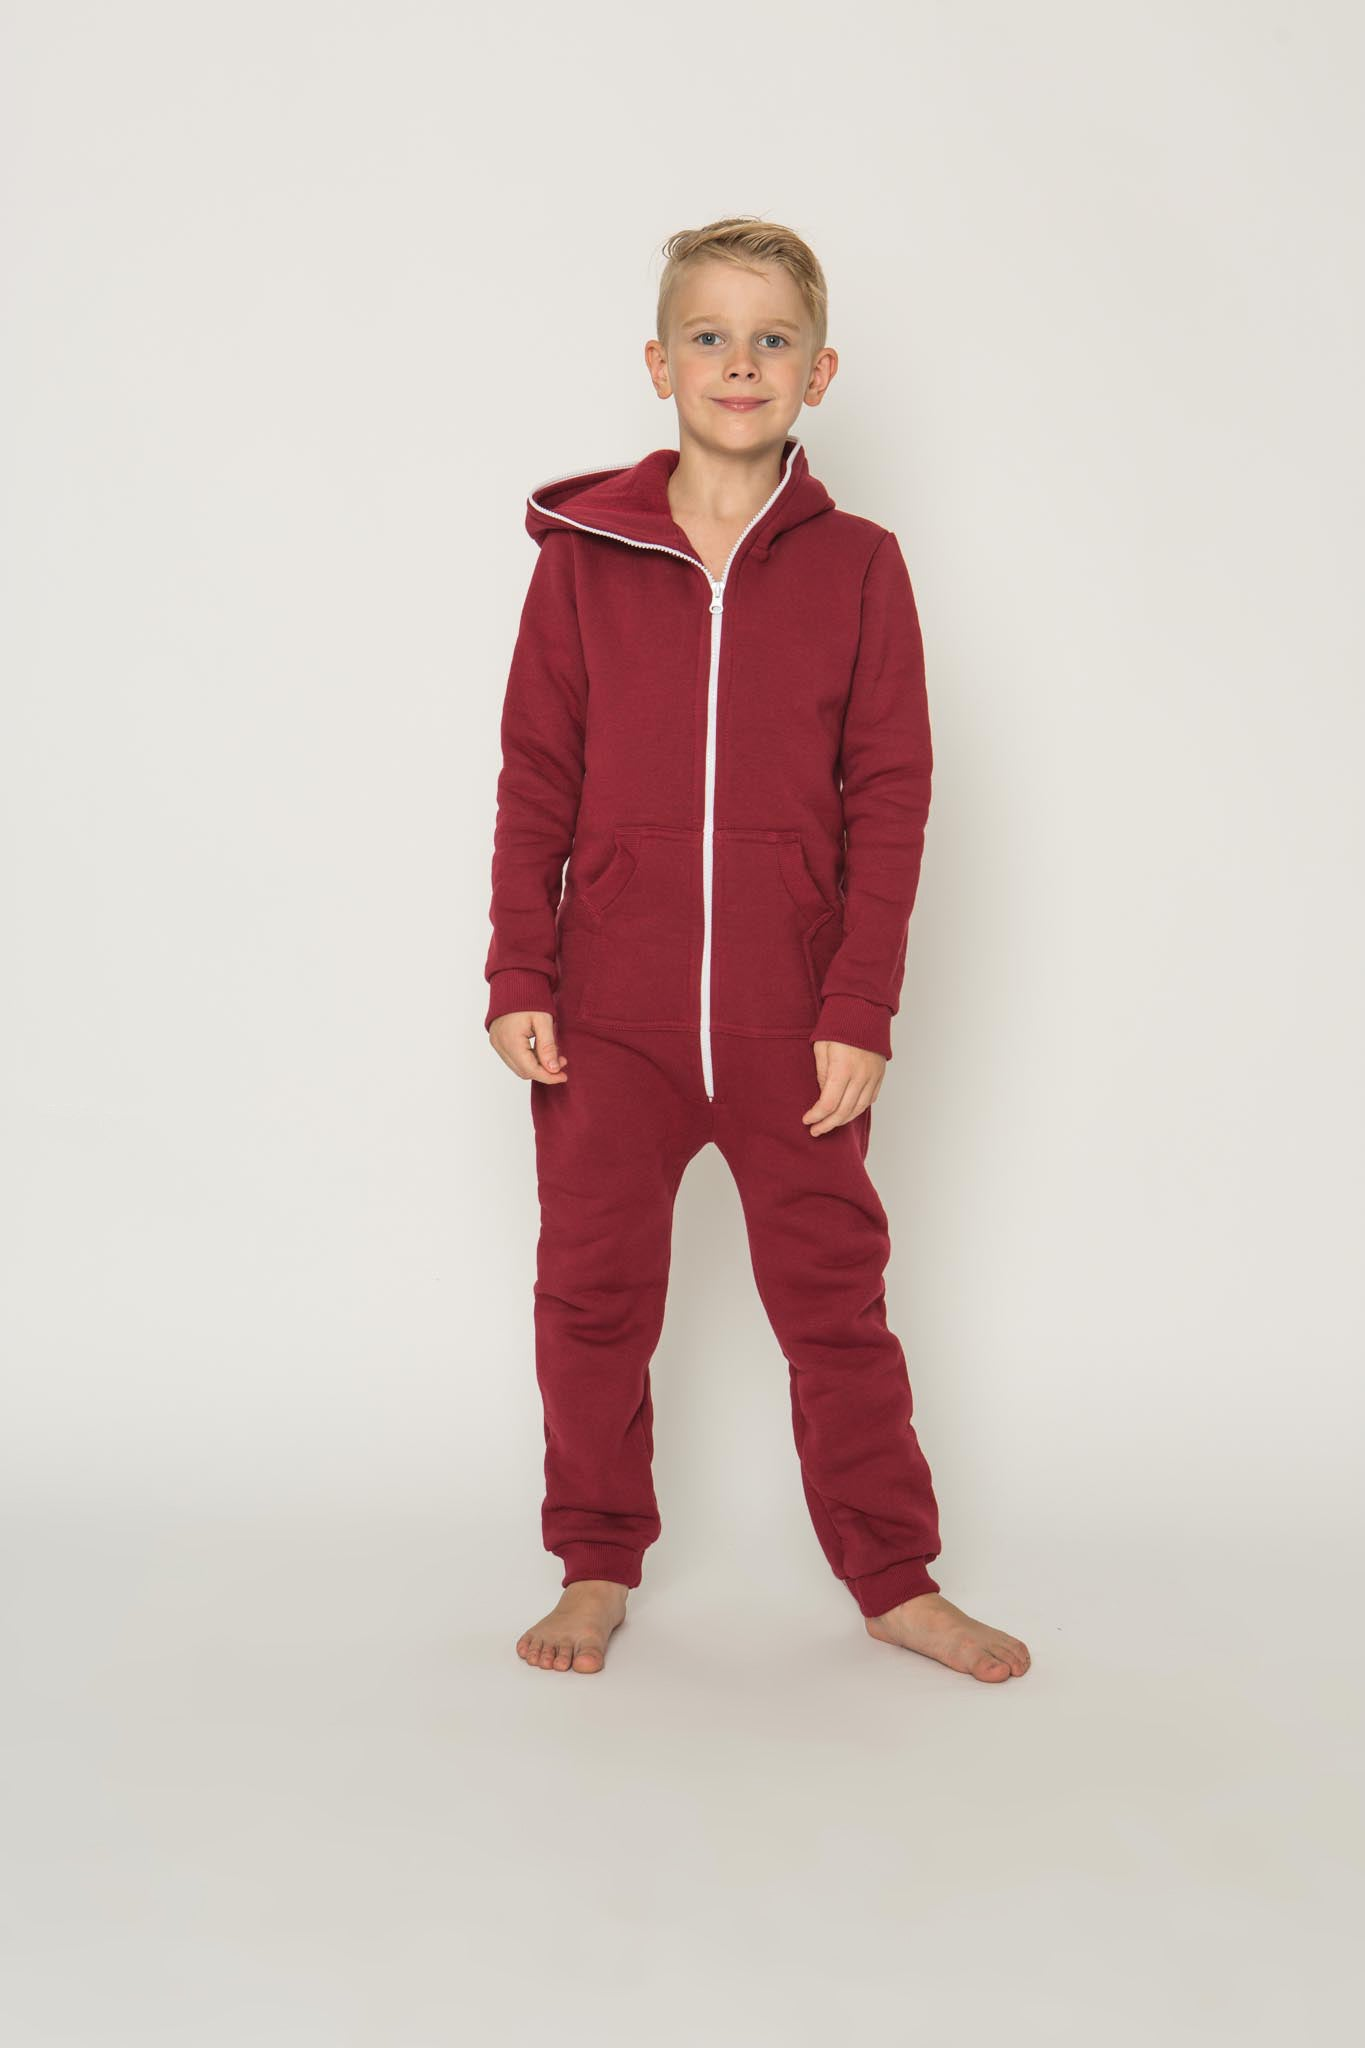 Sofa Killer burgundy unisex kids onesie